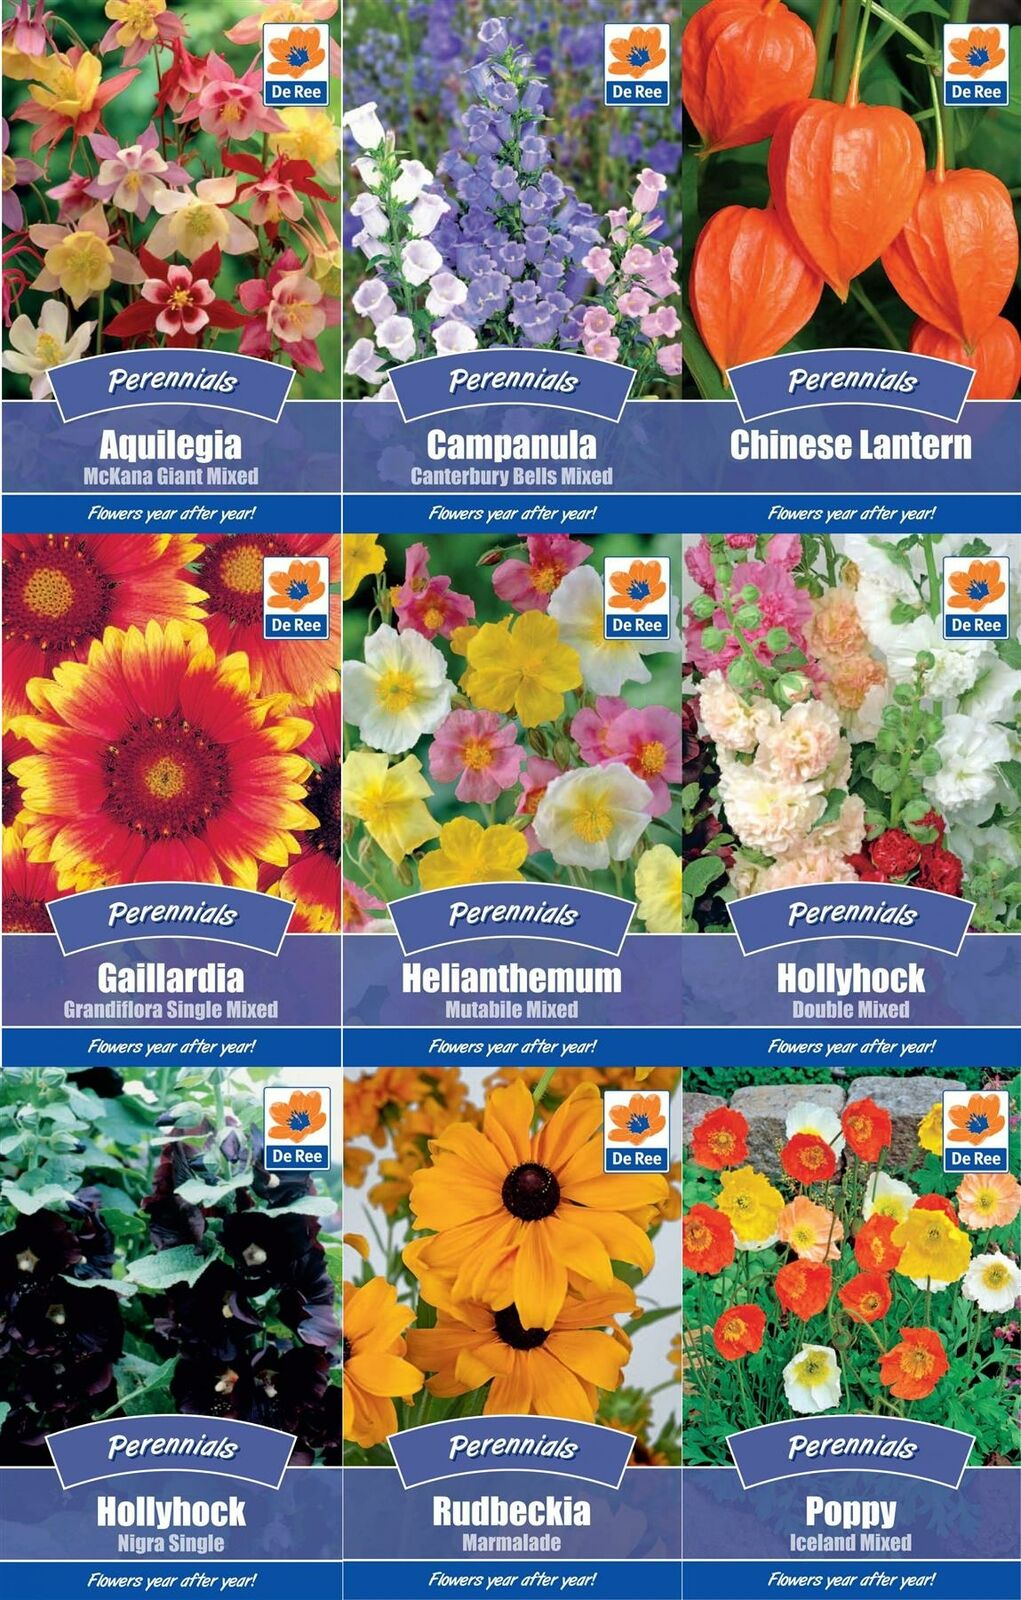 Colourful Perennial Flower Seeds Grow Your Own Hollyhock Poppy Polyanthus